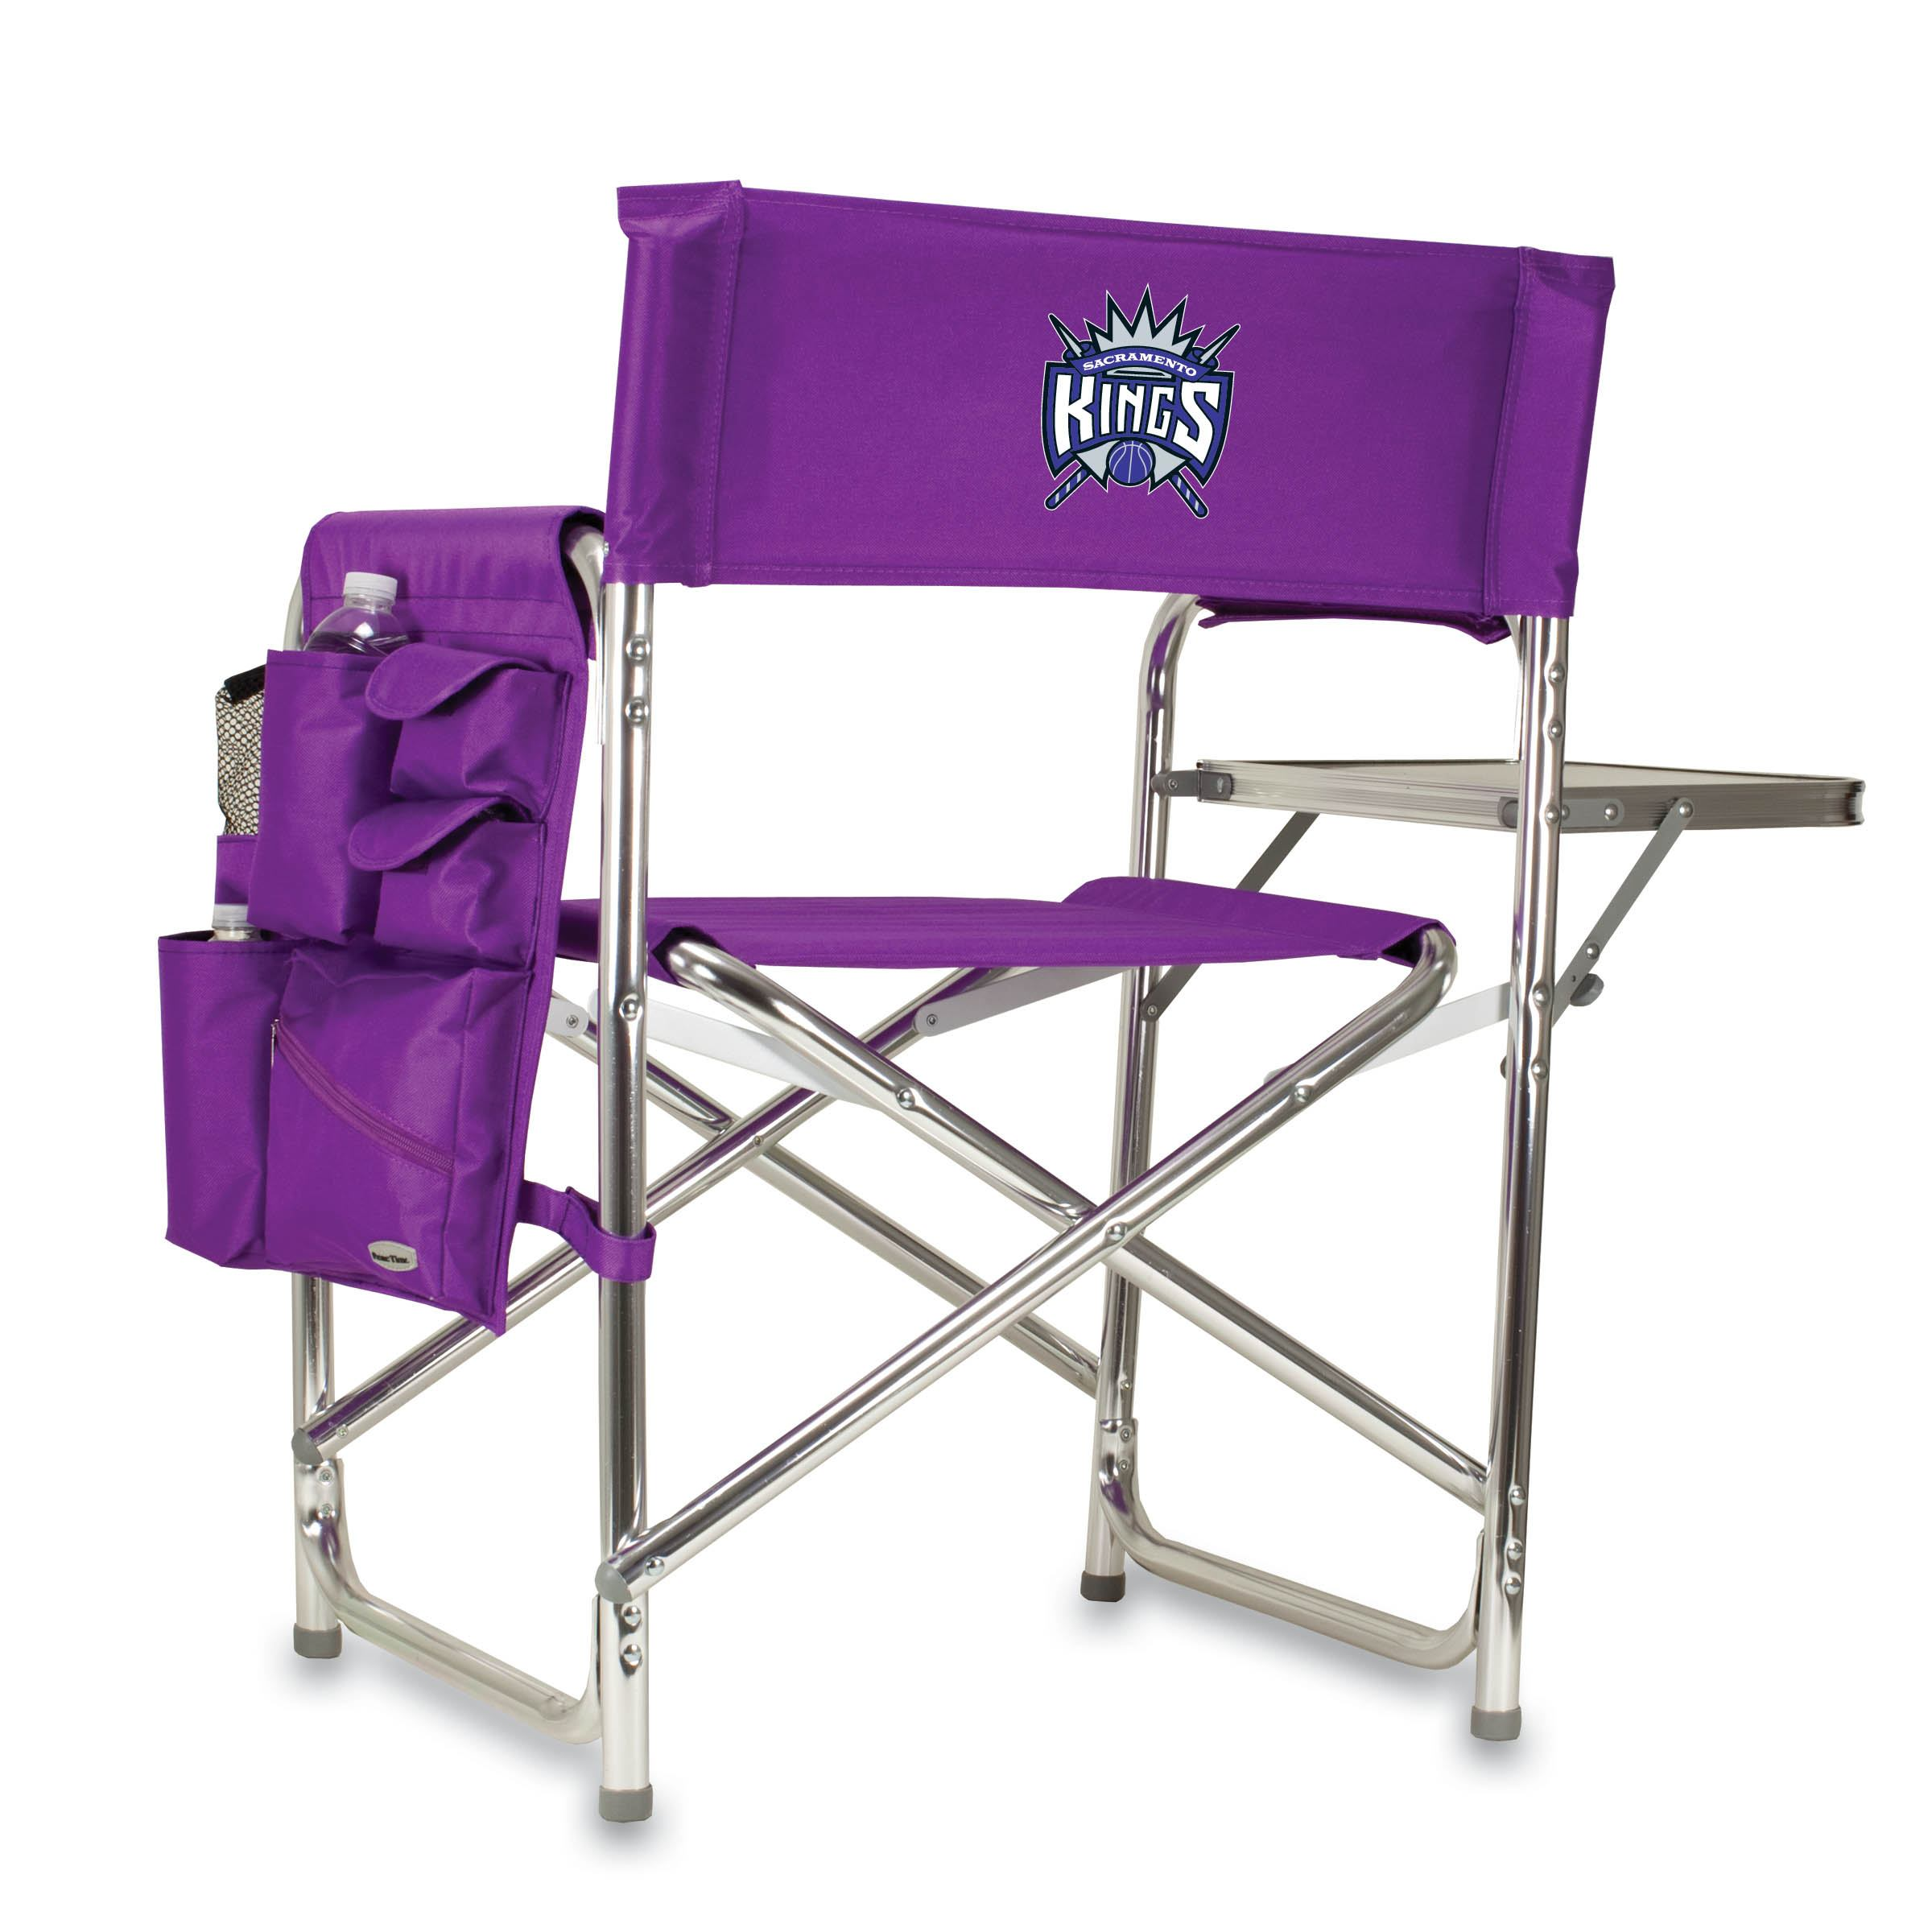 Picnic Time Nba Sports Chair Sacramento Kings